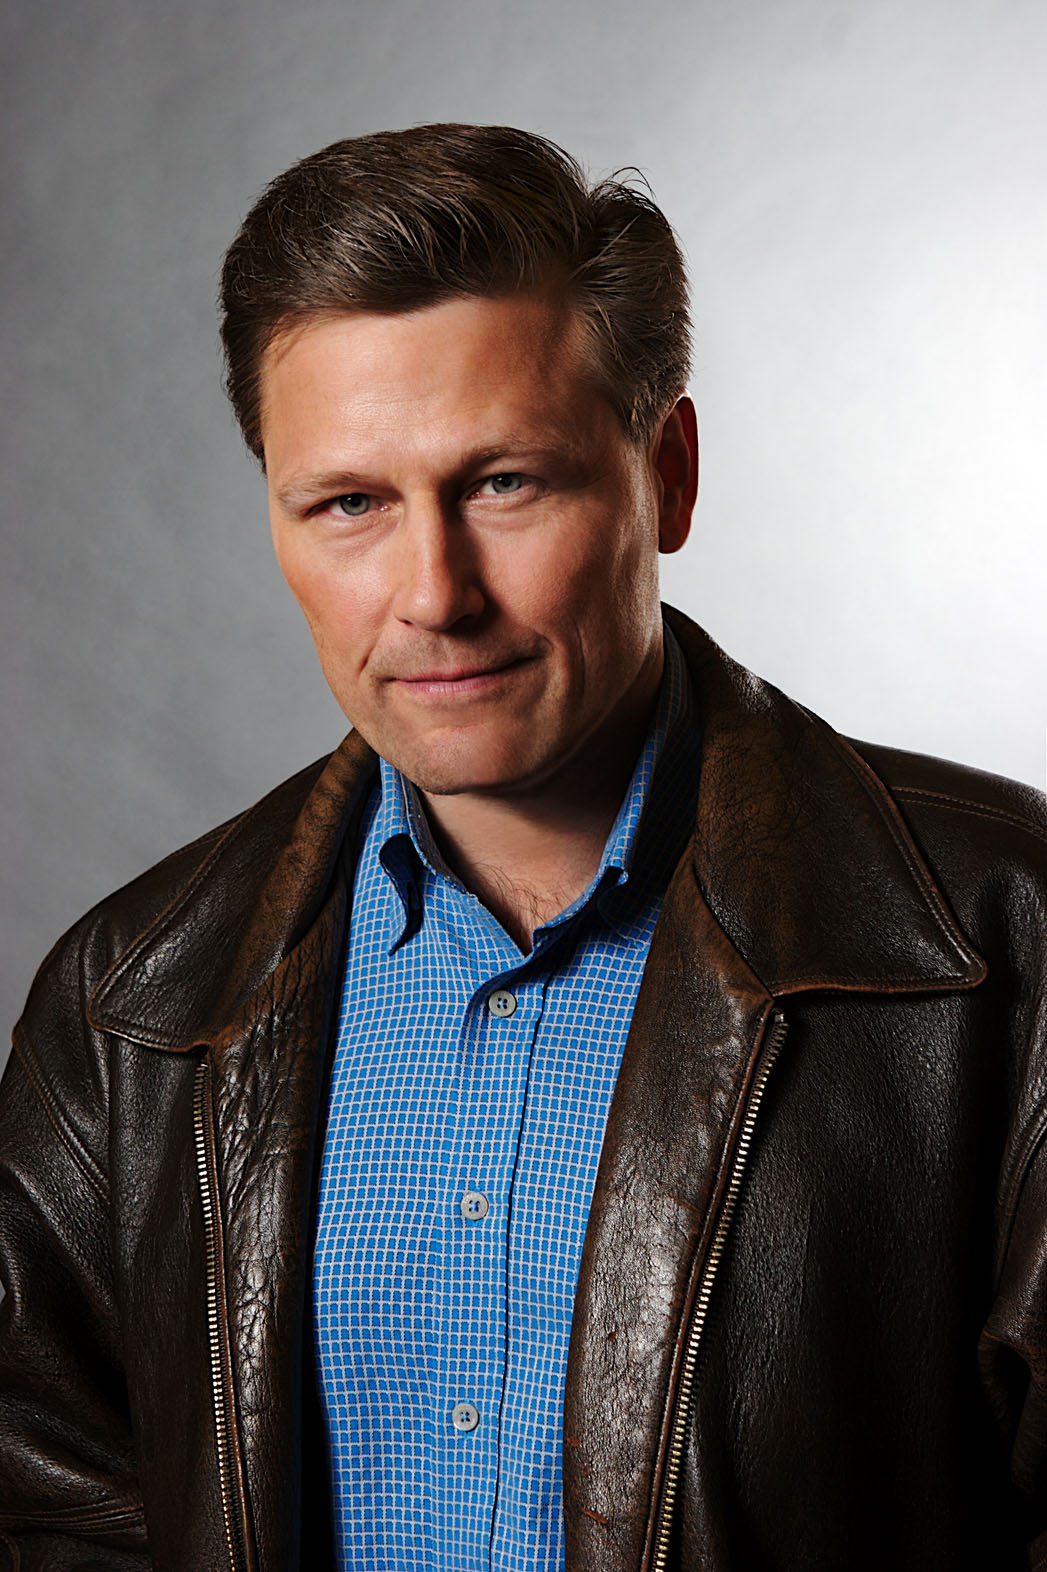 David Baldacci Headshot - P 2013